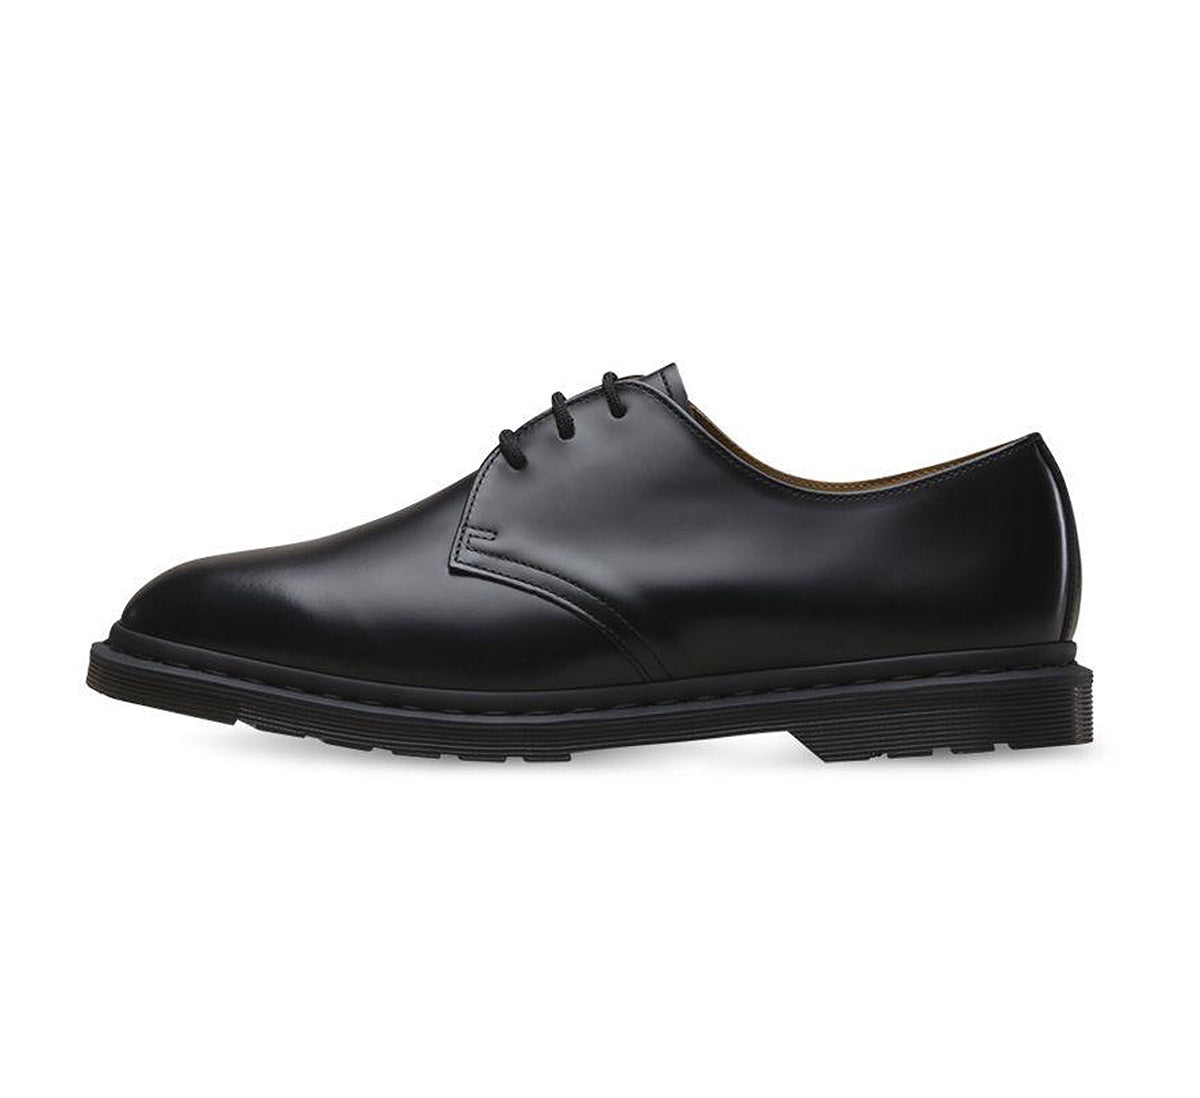 Dr. Martens Archie II 3 Eye Shoe - Black